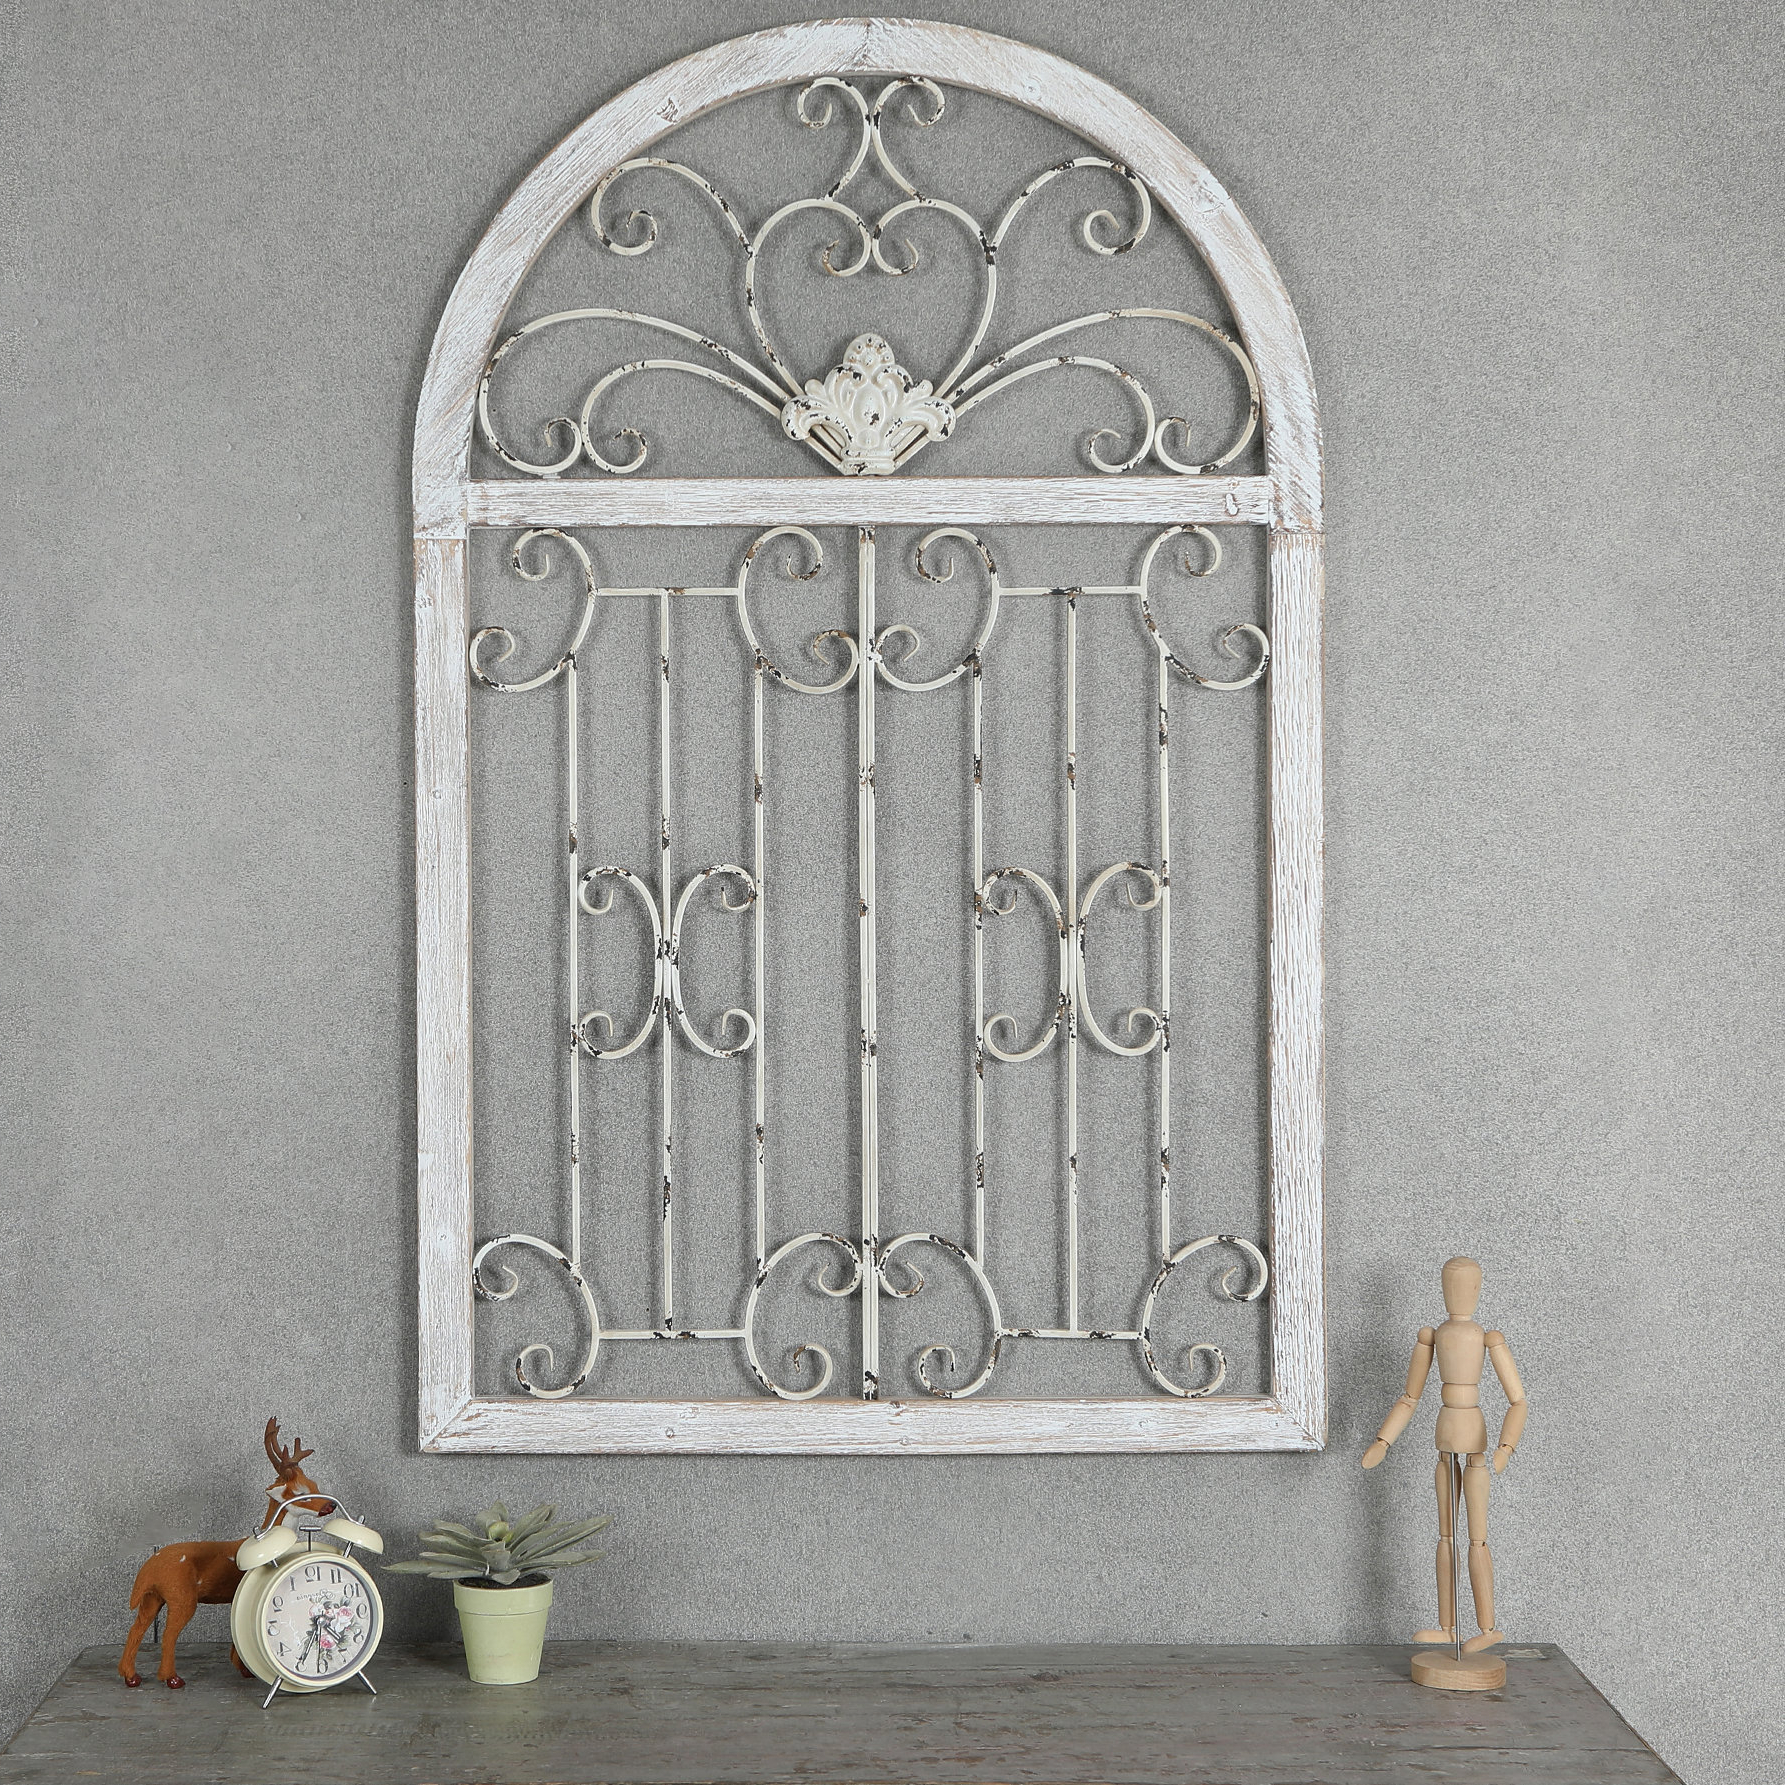 Wayfair Pertaining To Ornate Scroll Wall Decor (Gallery 5 of 20)